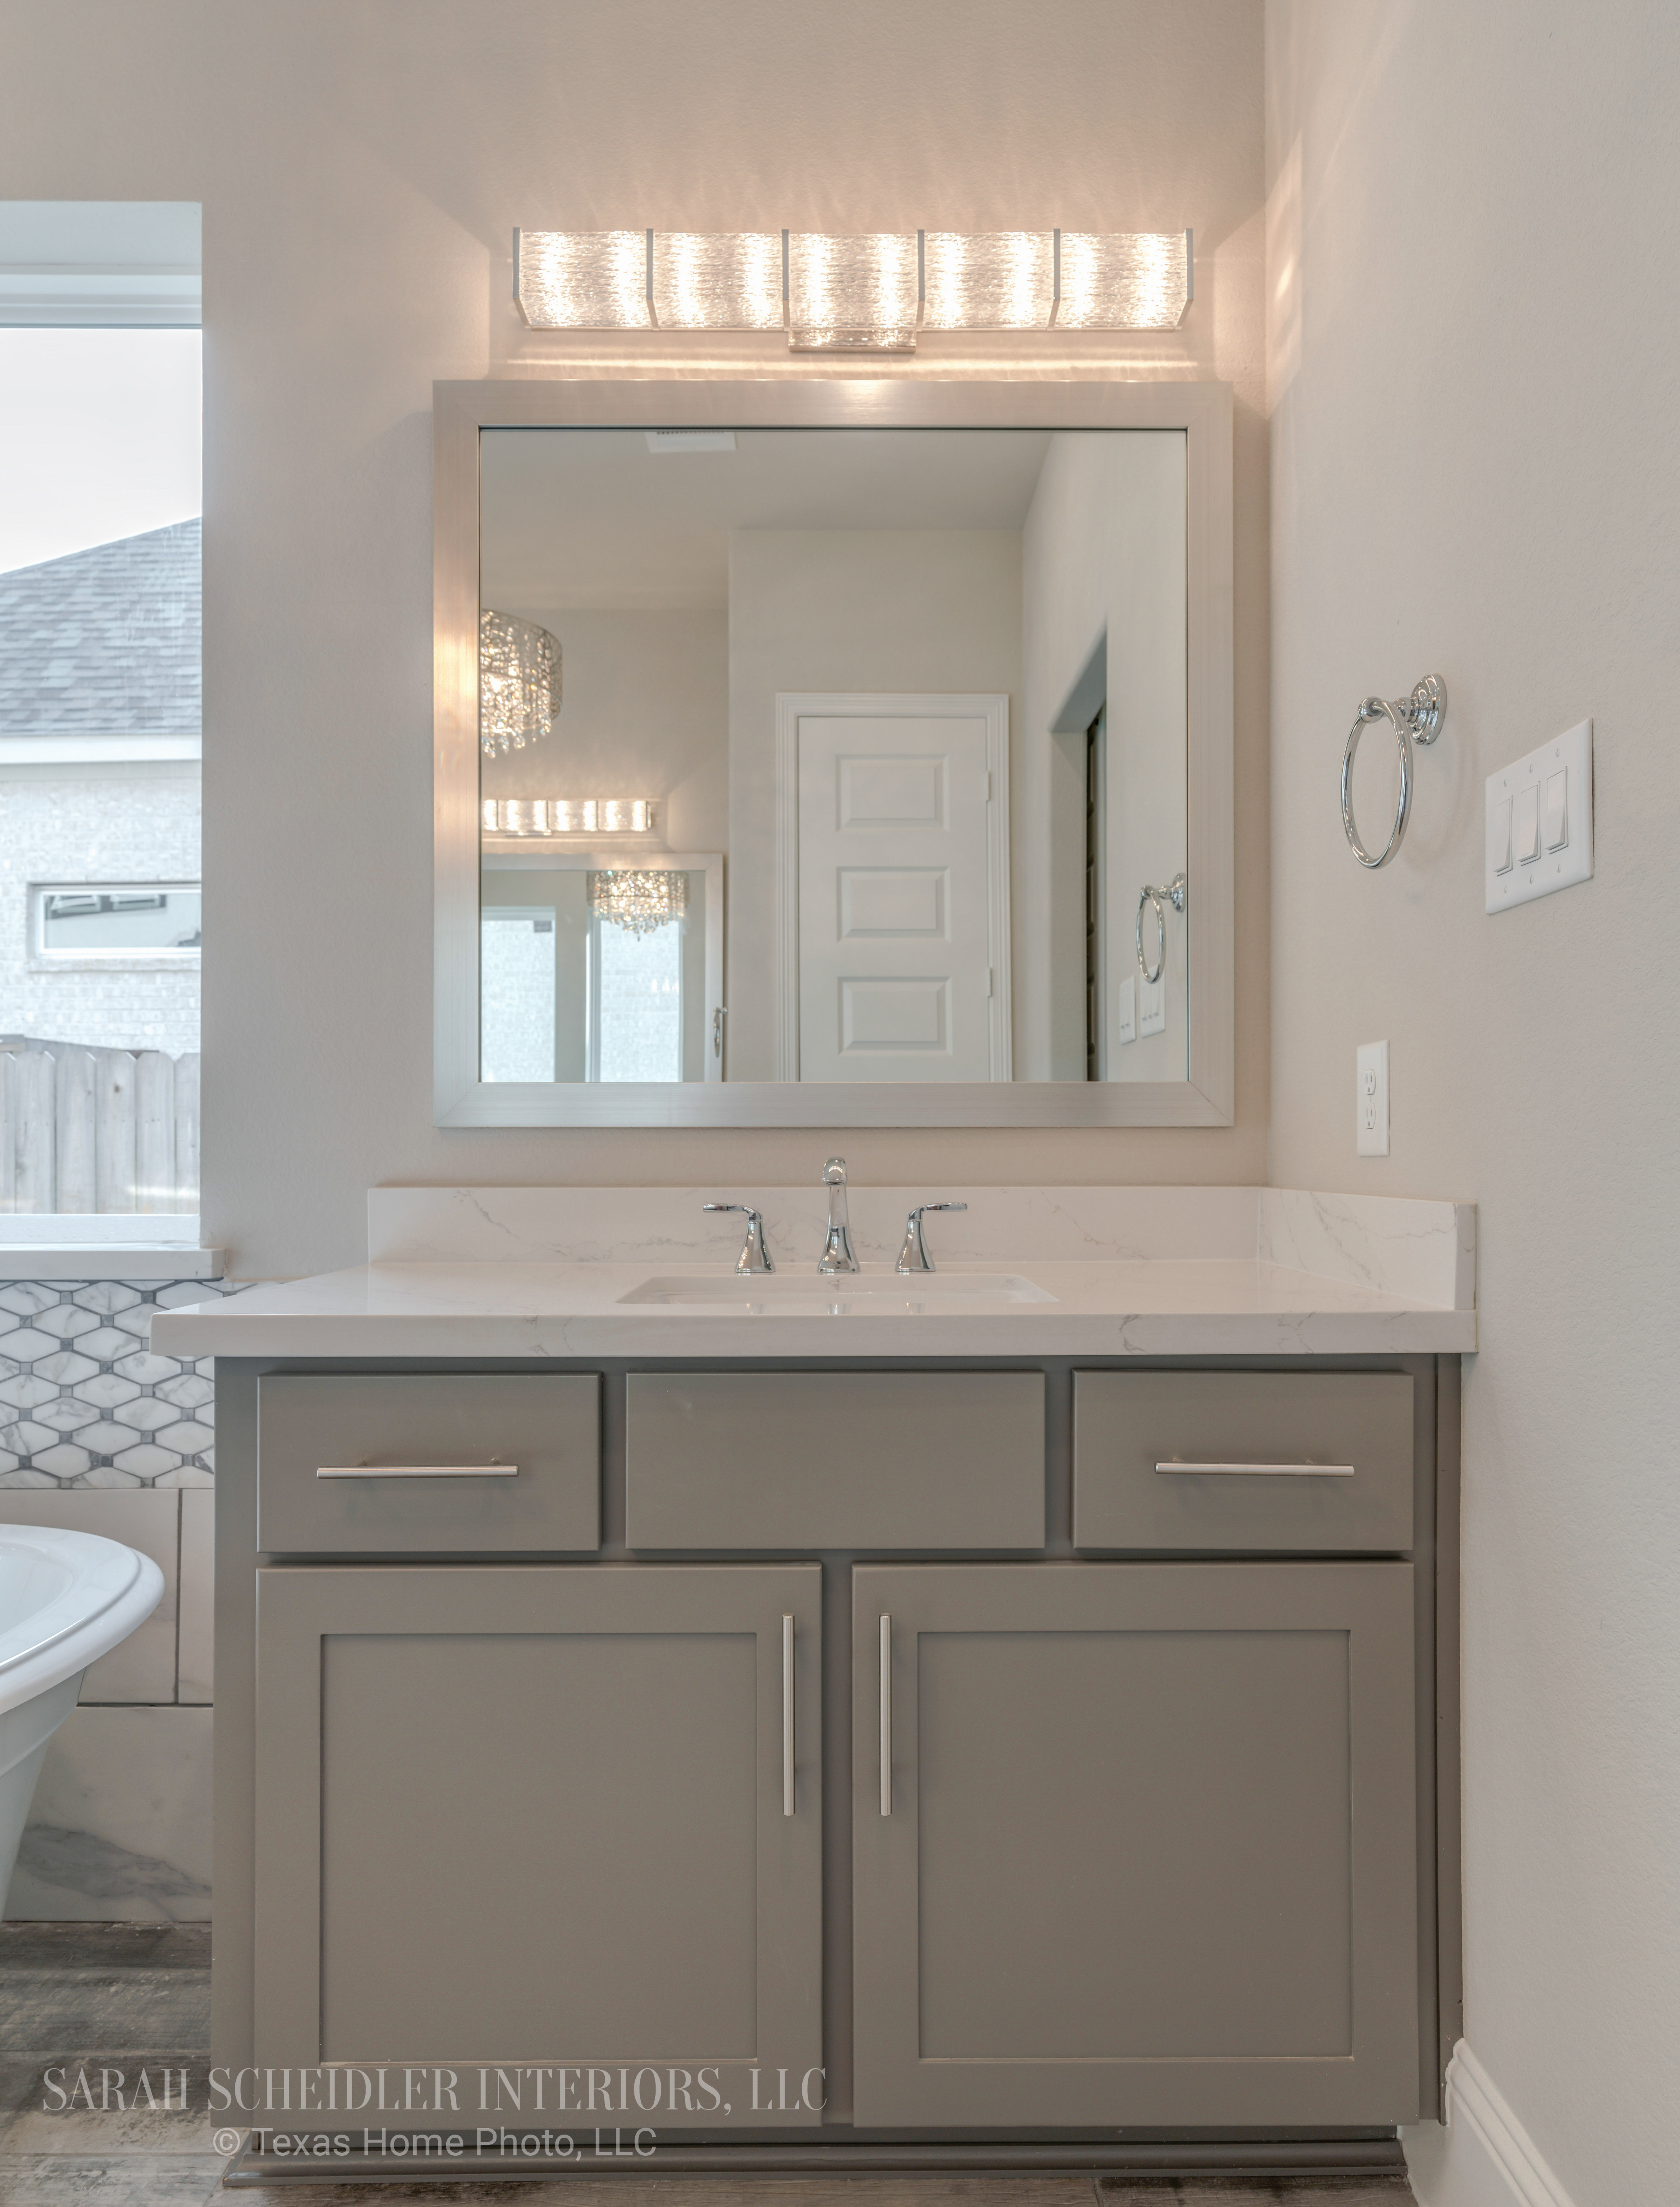 White and Grey Master Bathroom Vanity (His) with Silestone Quartz Countertops, Chrome Finishes, and Crystal Lighting